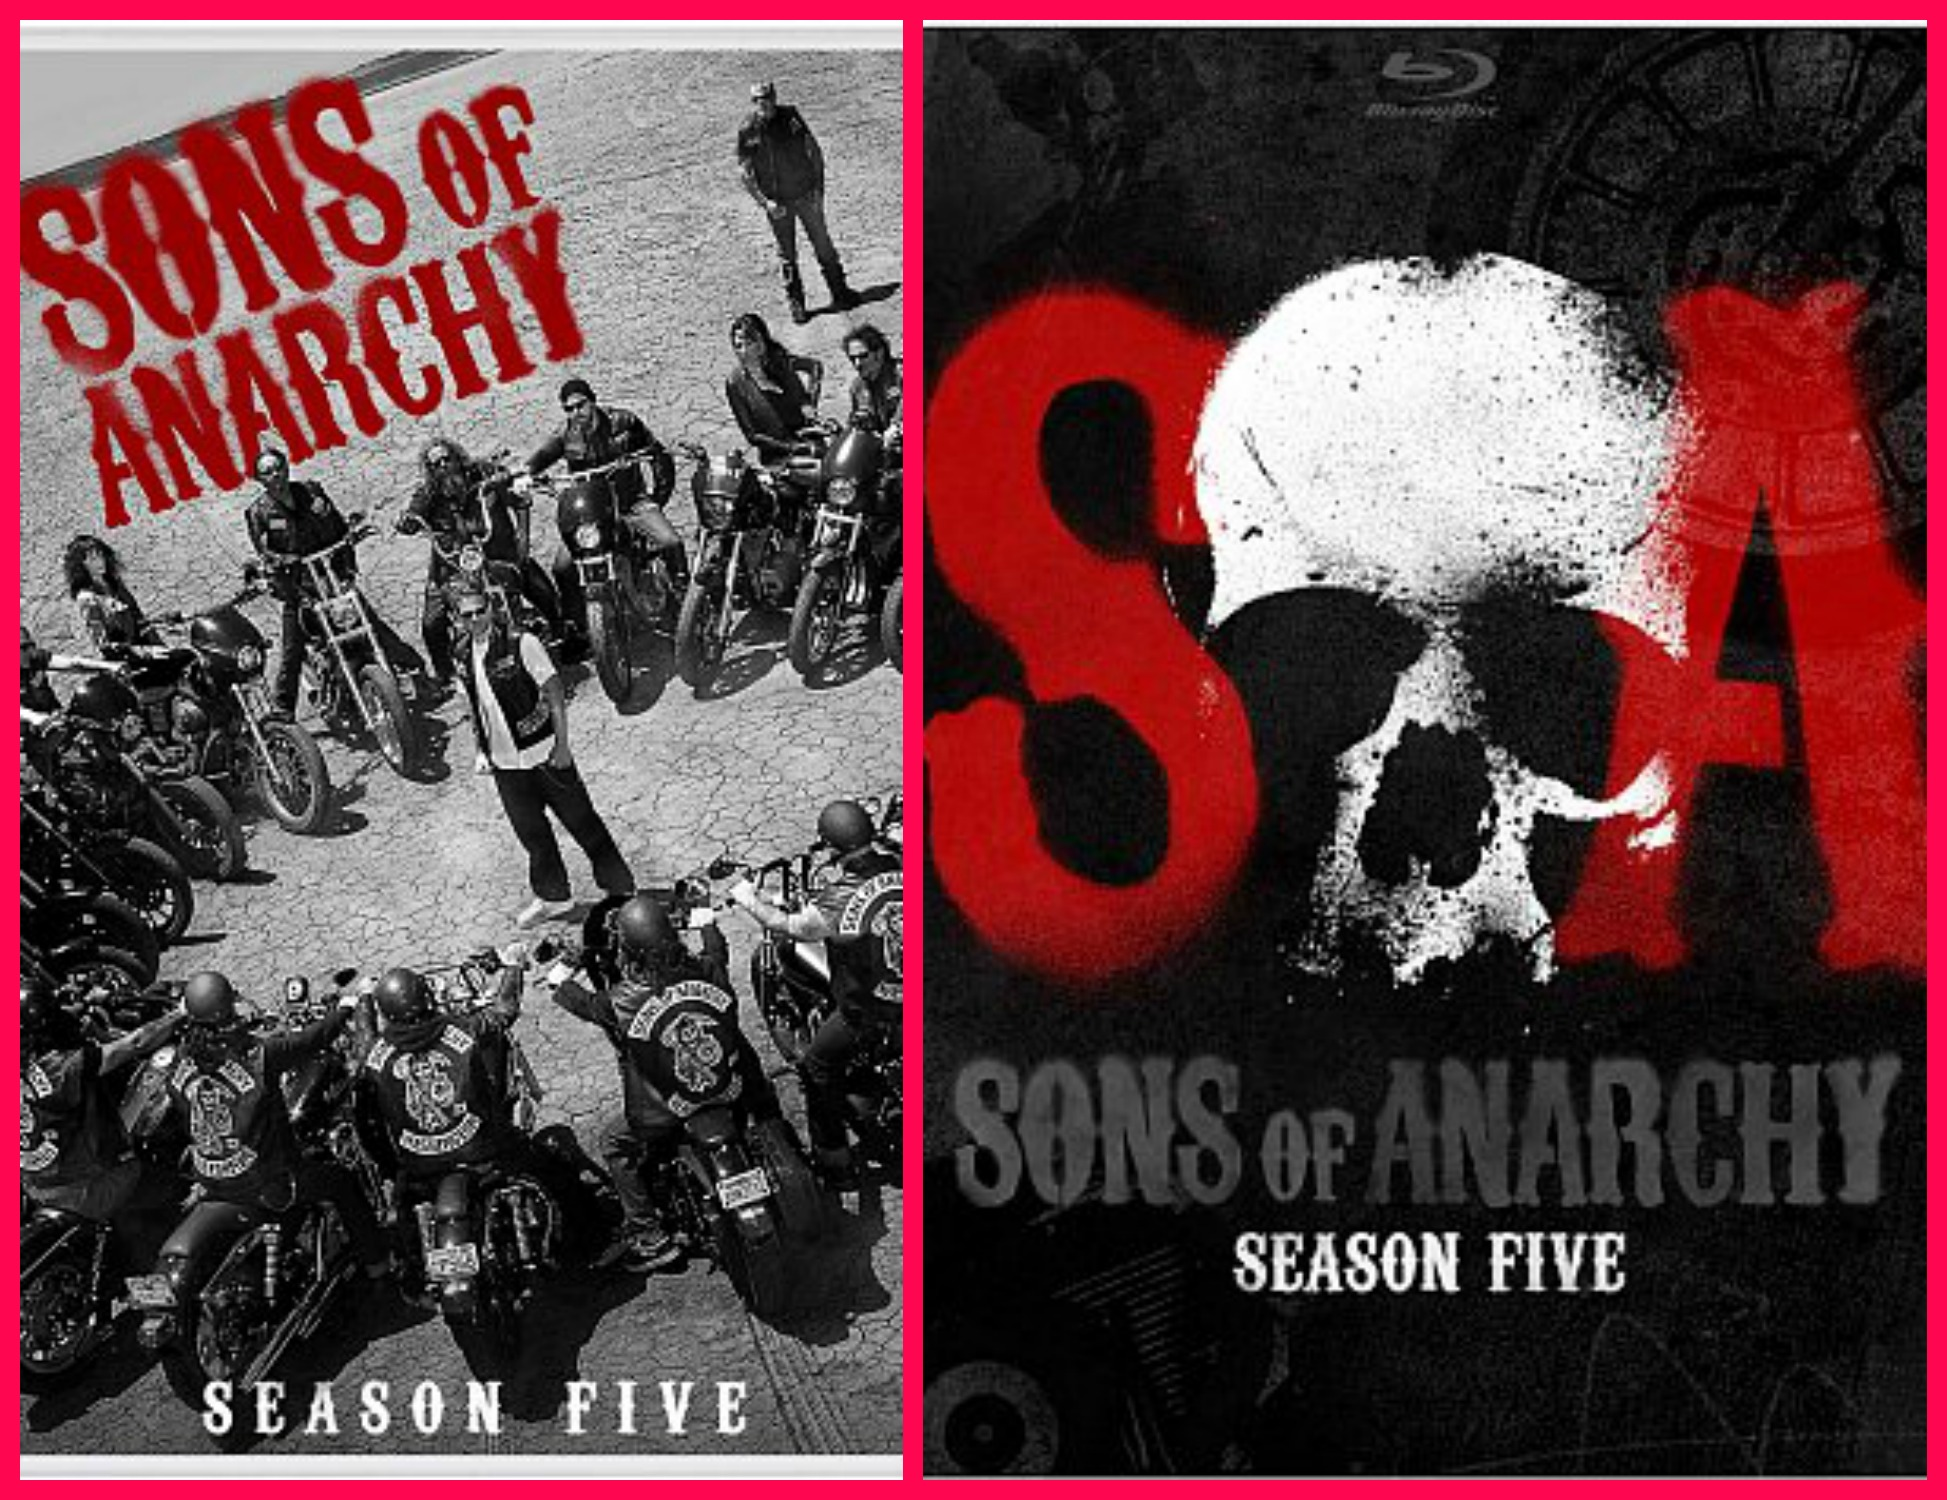 Sons Of Anarchy Season 5 On Blue Ray And Dvd Tales Of A